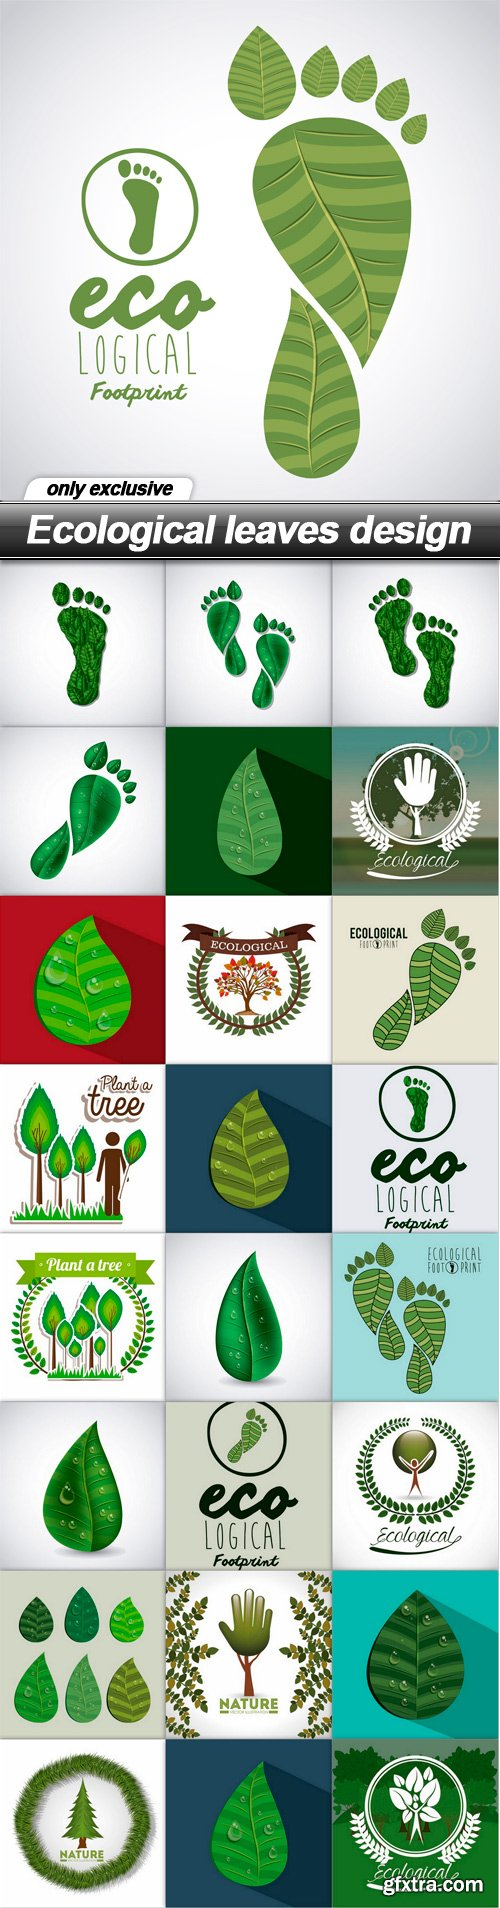 Ecological leaves design - 25 EPS